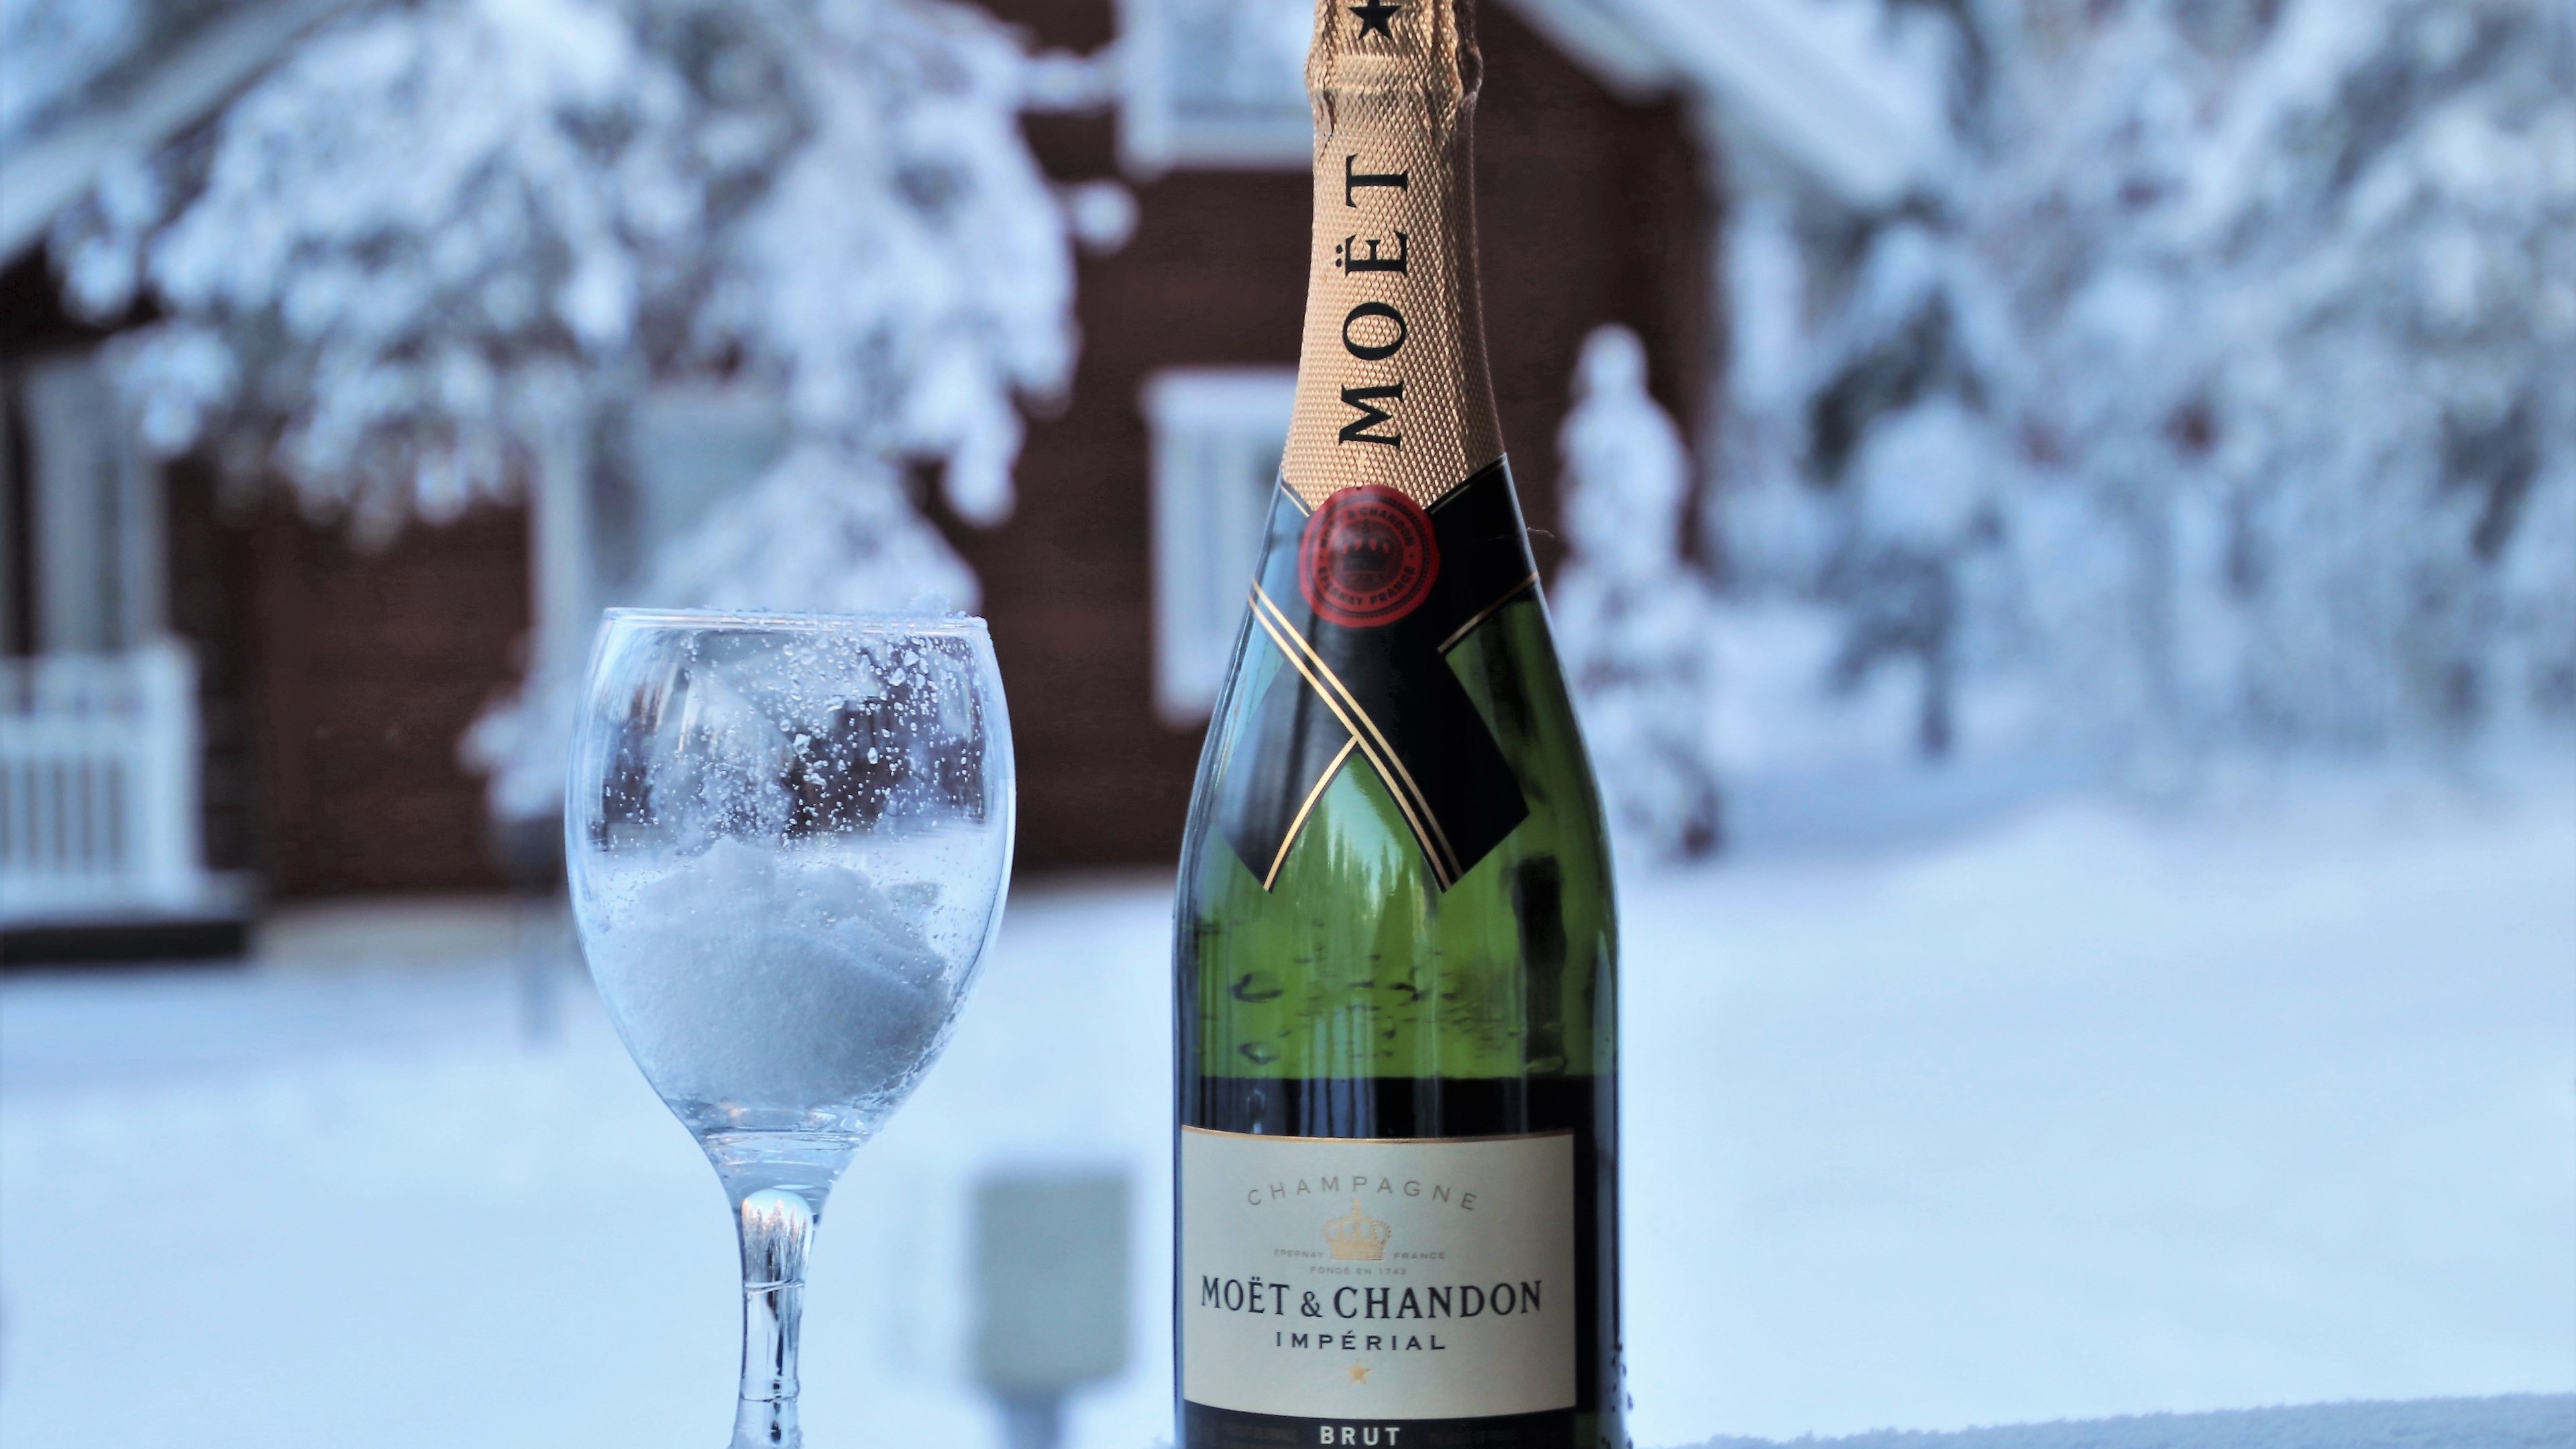 Moet champagne | 3840x2160 wallpaper